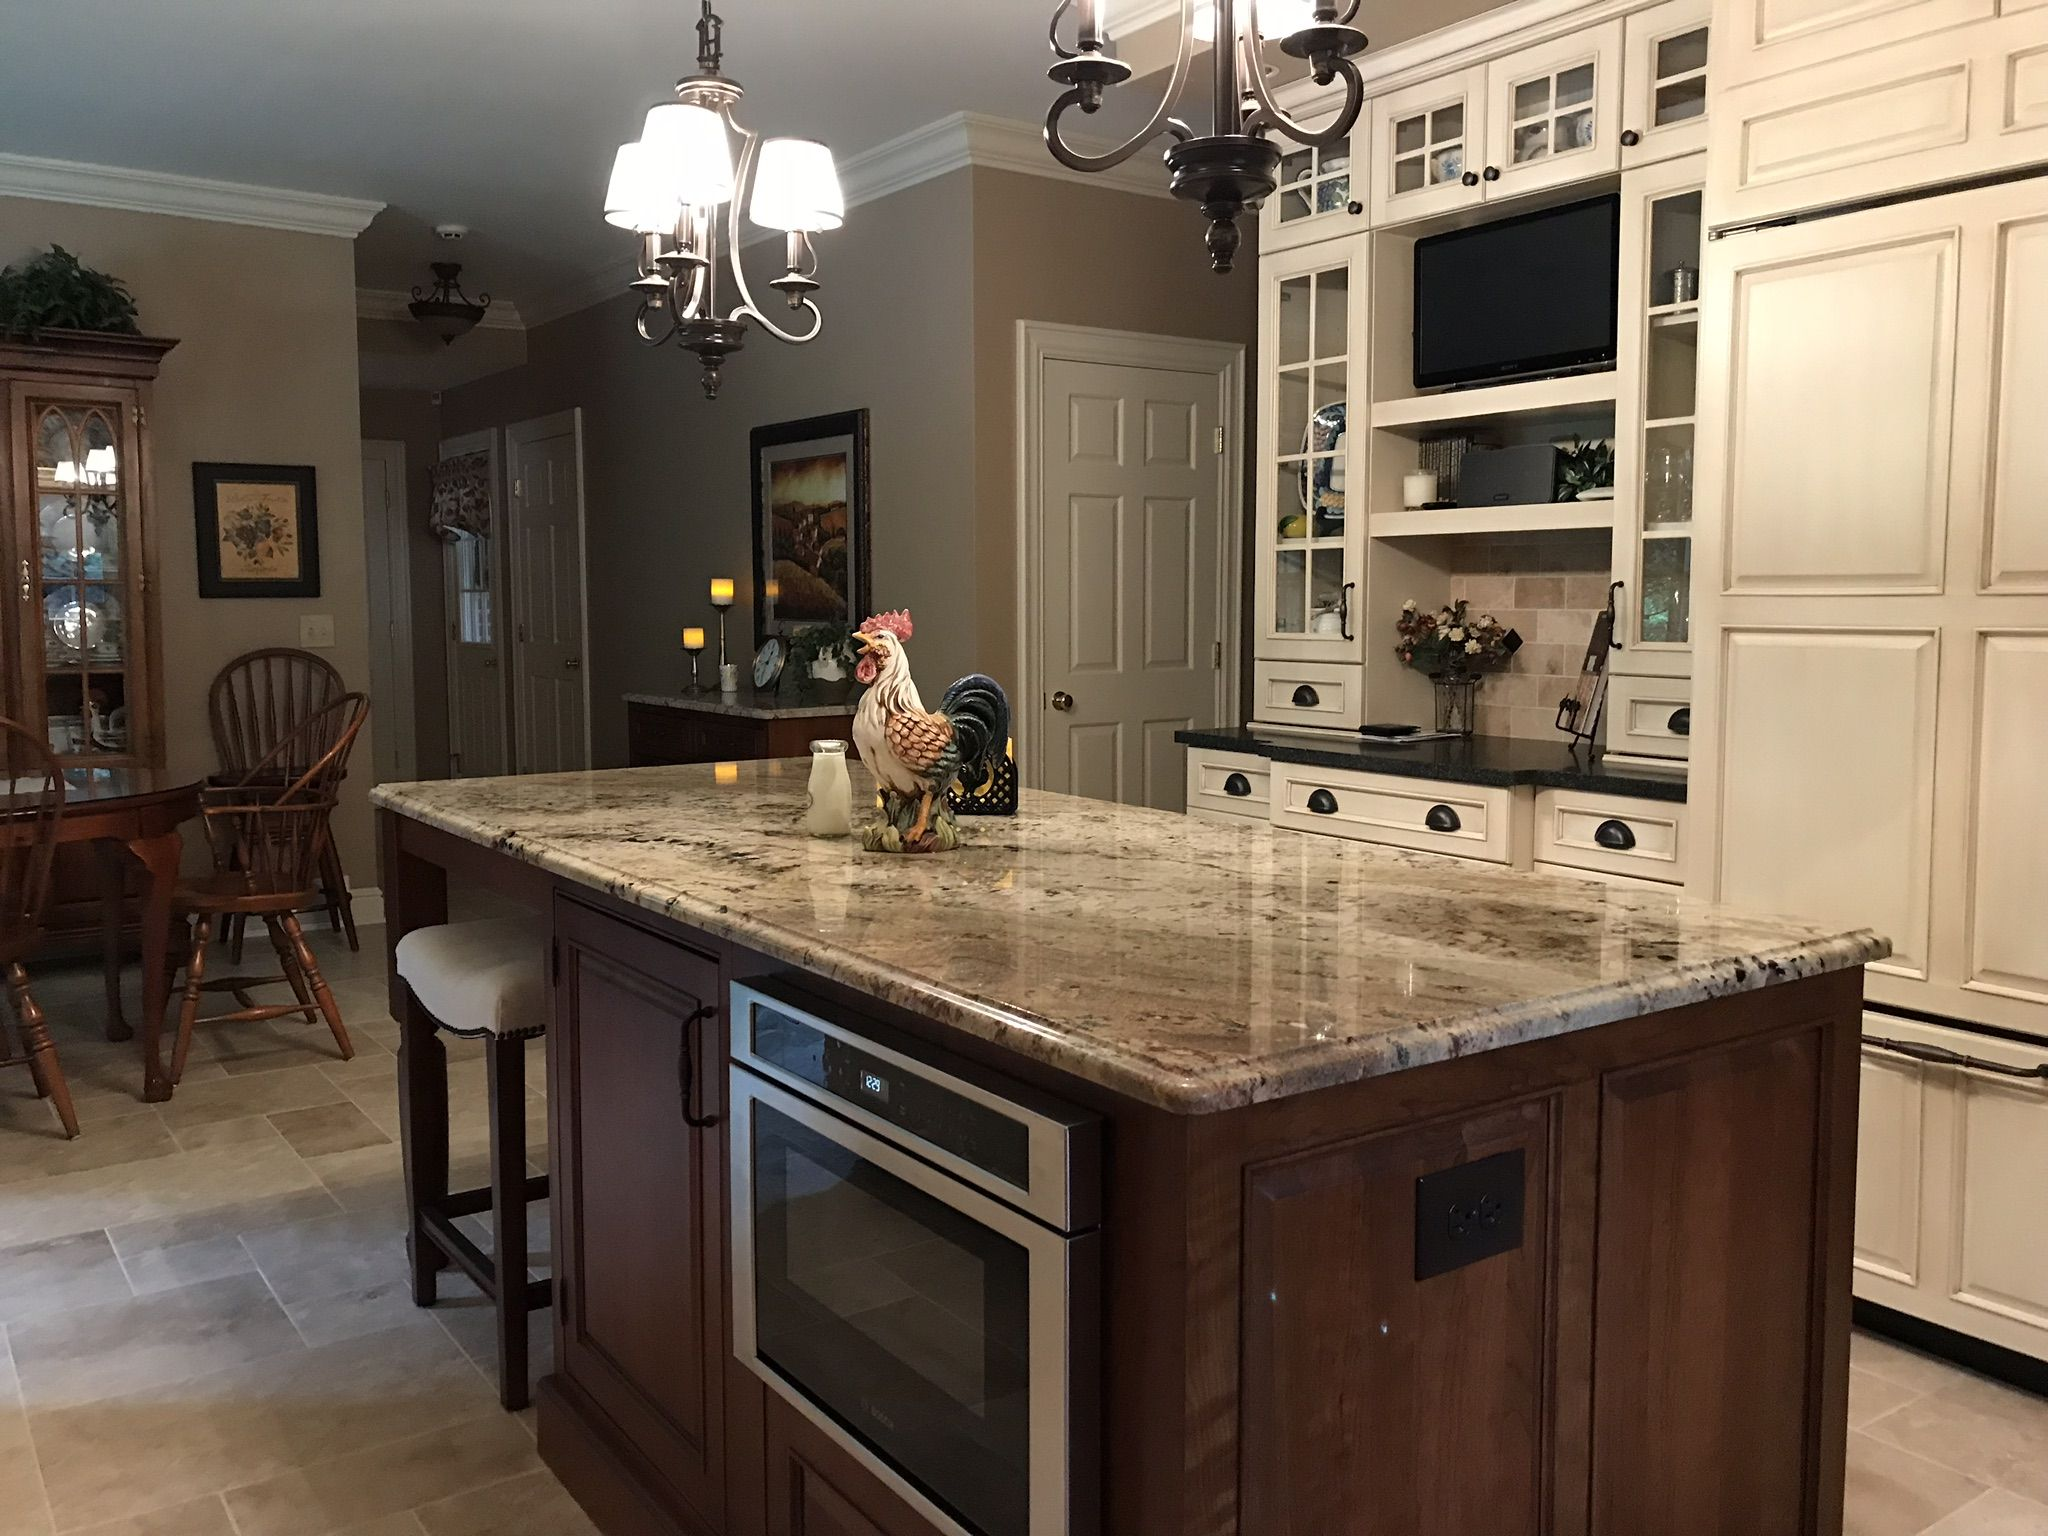 Akron Customer Eddy After The Kitchen Remodel This Is A Dura